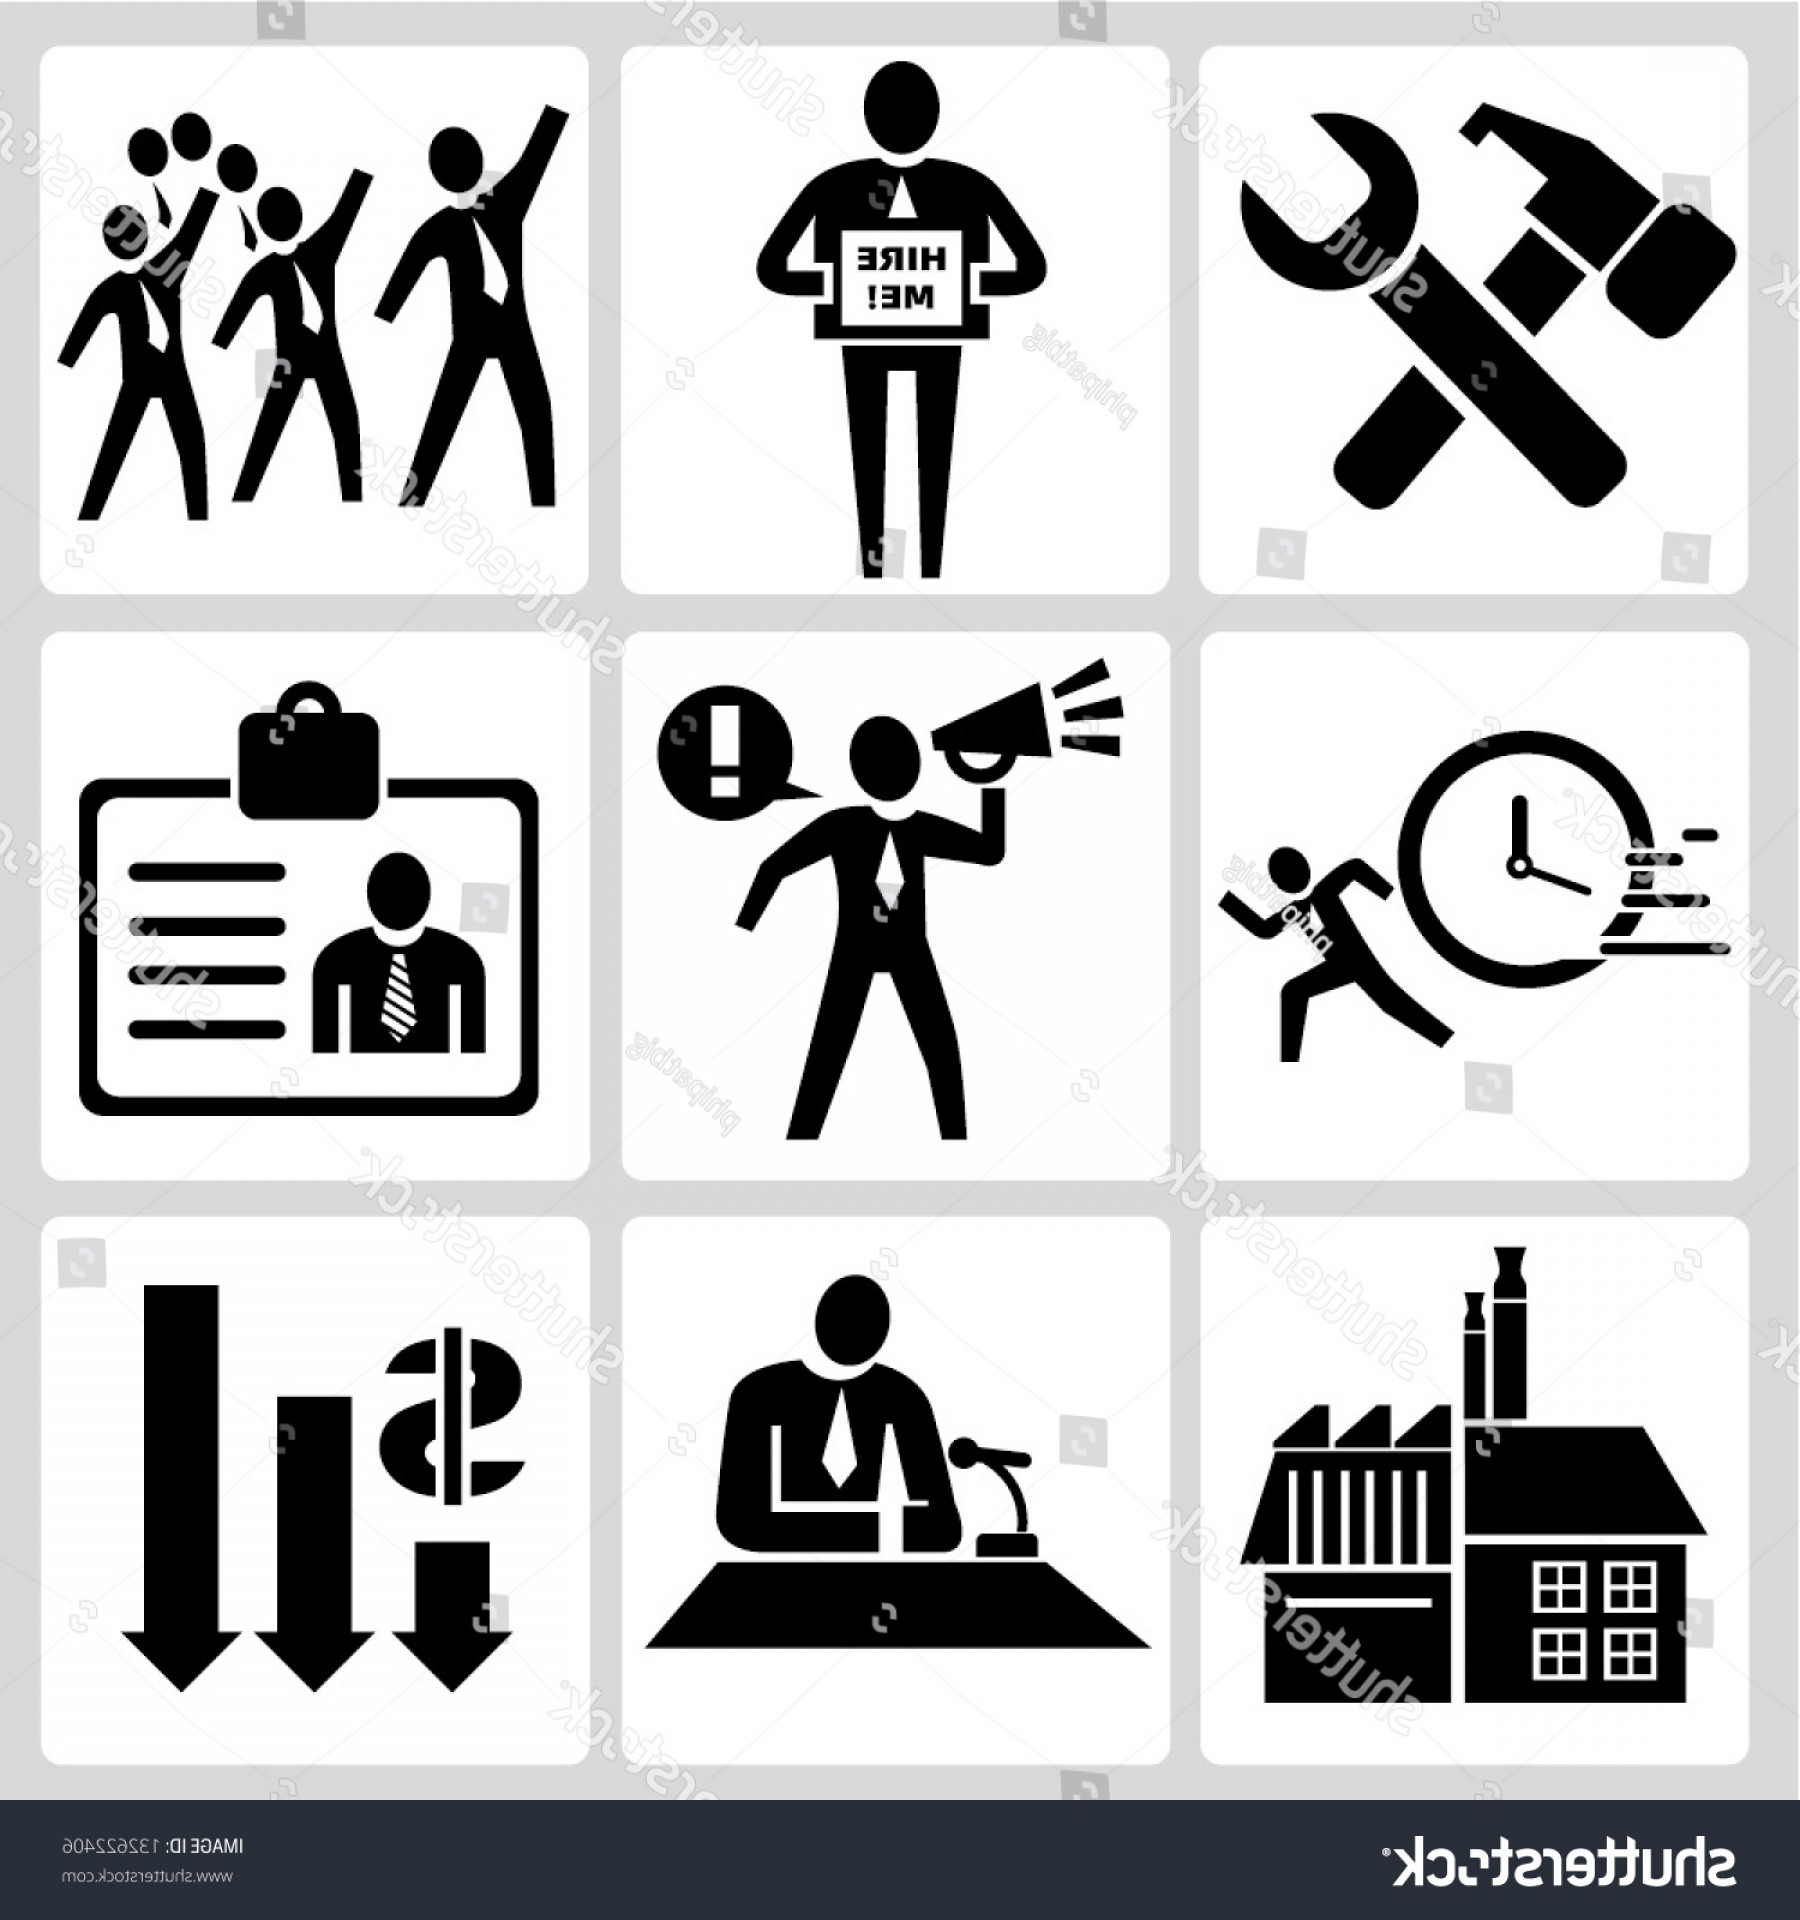 Vector Black And White Organization: Organization Human Resource Trade Union Sign